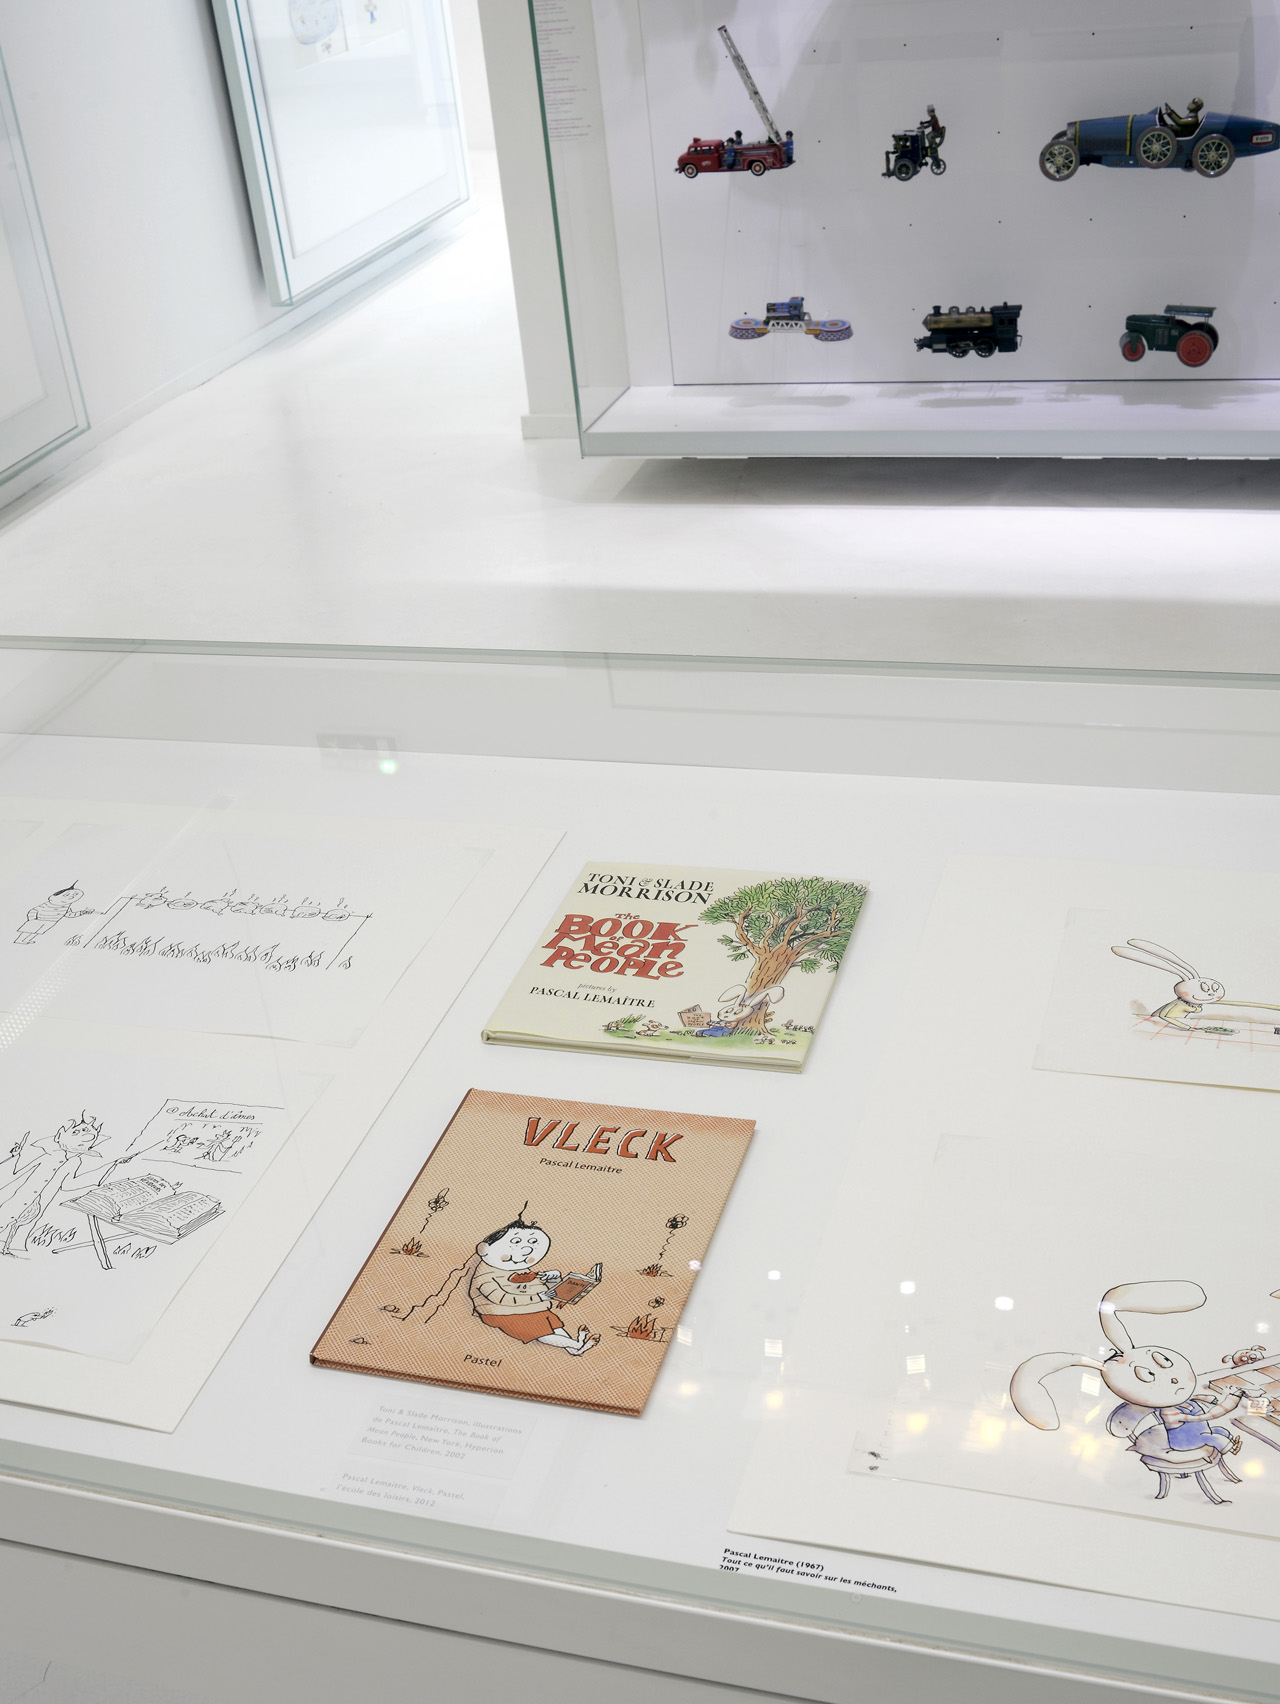 The Book of Mean People, Vleck and Le Petit Cordonnier de Venise exhibited at the Tomi Ungerer Museum/ International Center of Illustration.